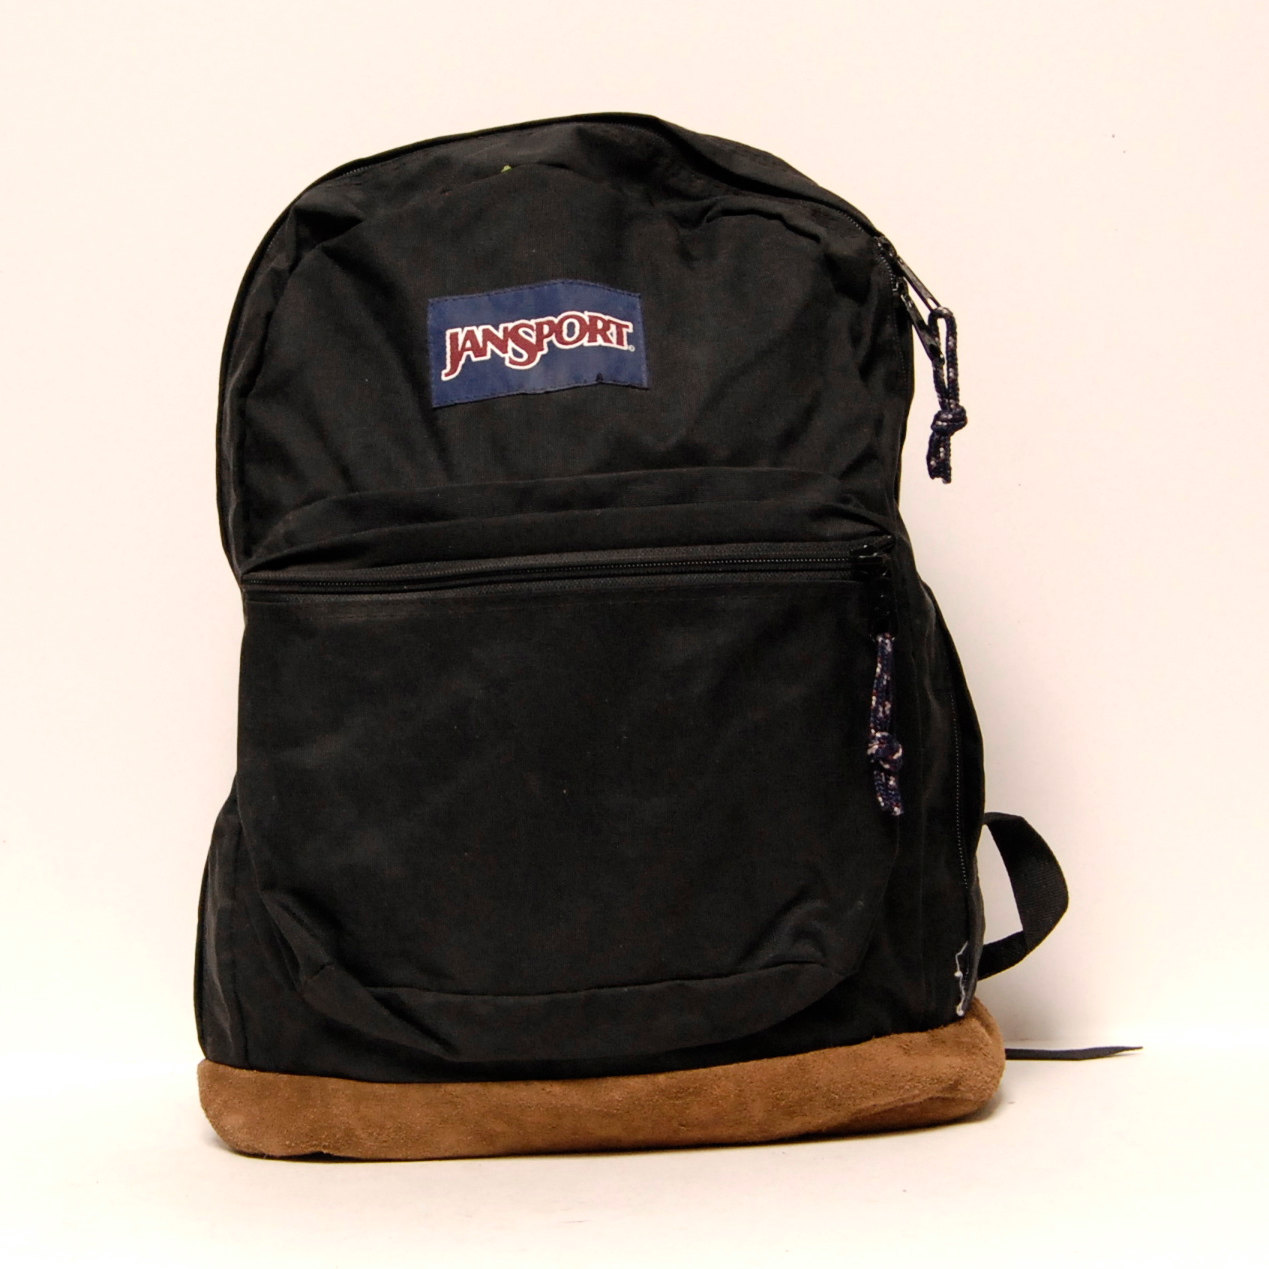 Classic Jansport Backpack a1rSeqv4